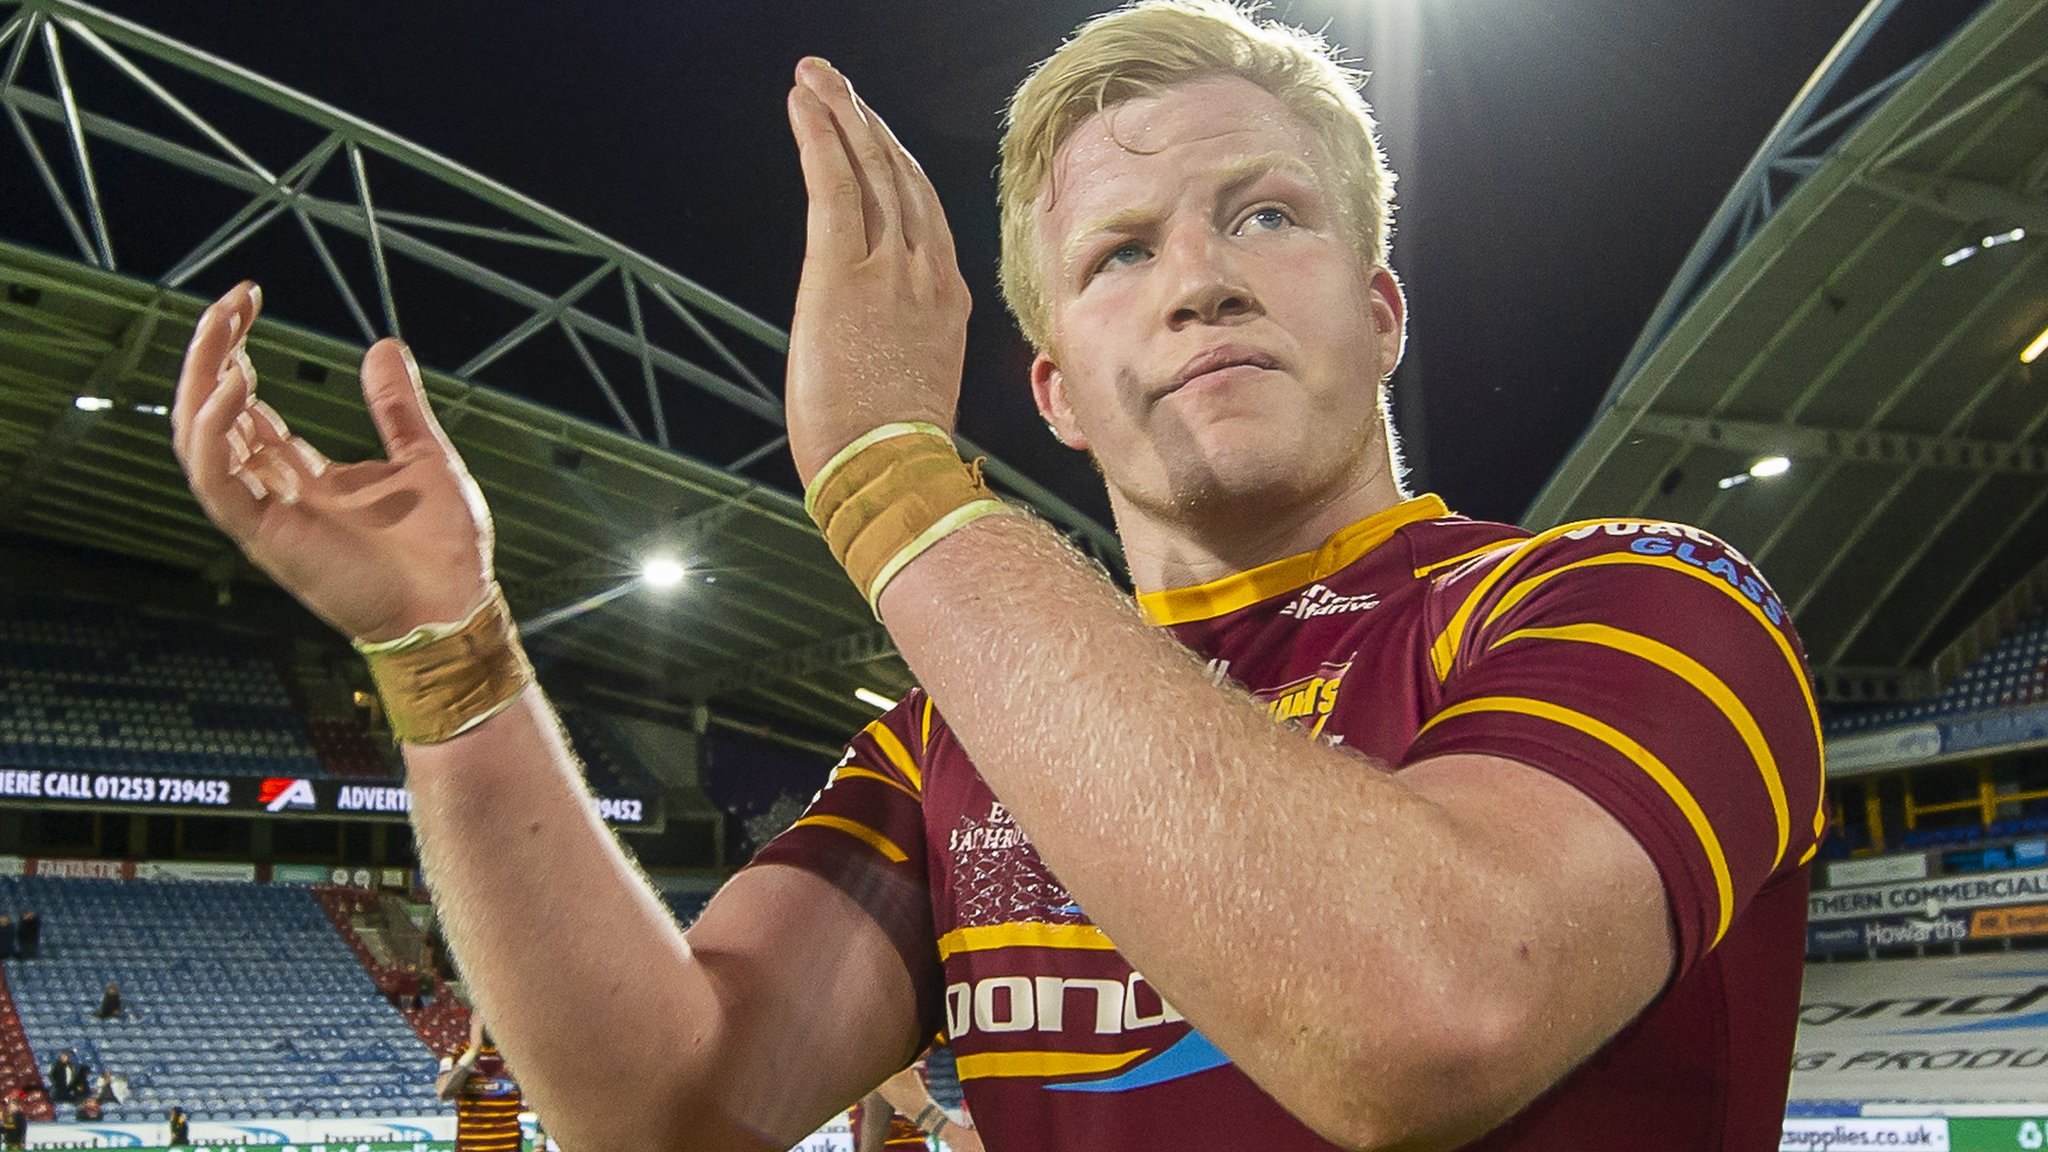 Matty English: Huddersfield Giants prop extends contract until 2022